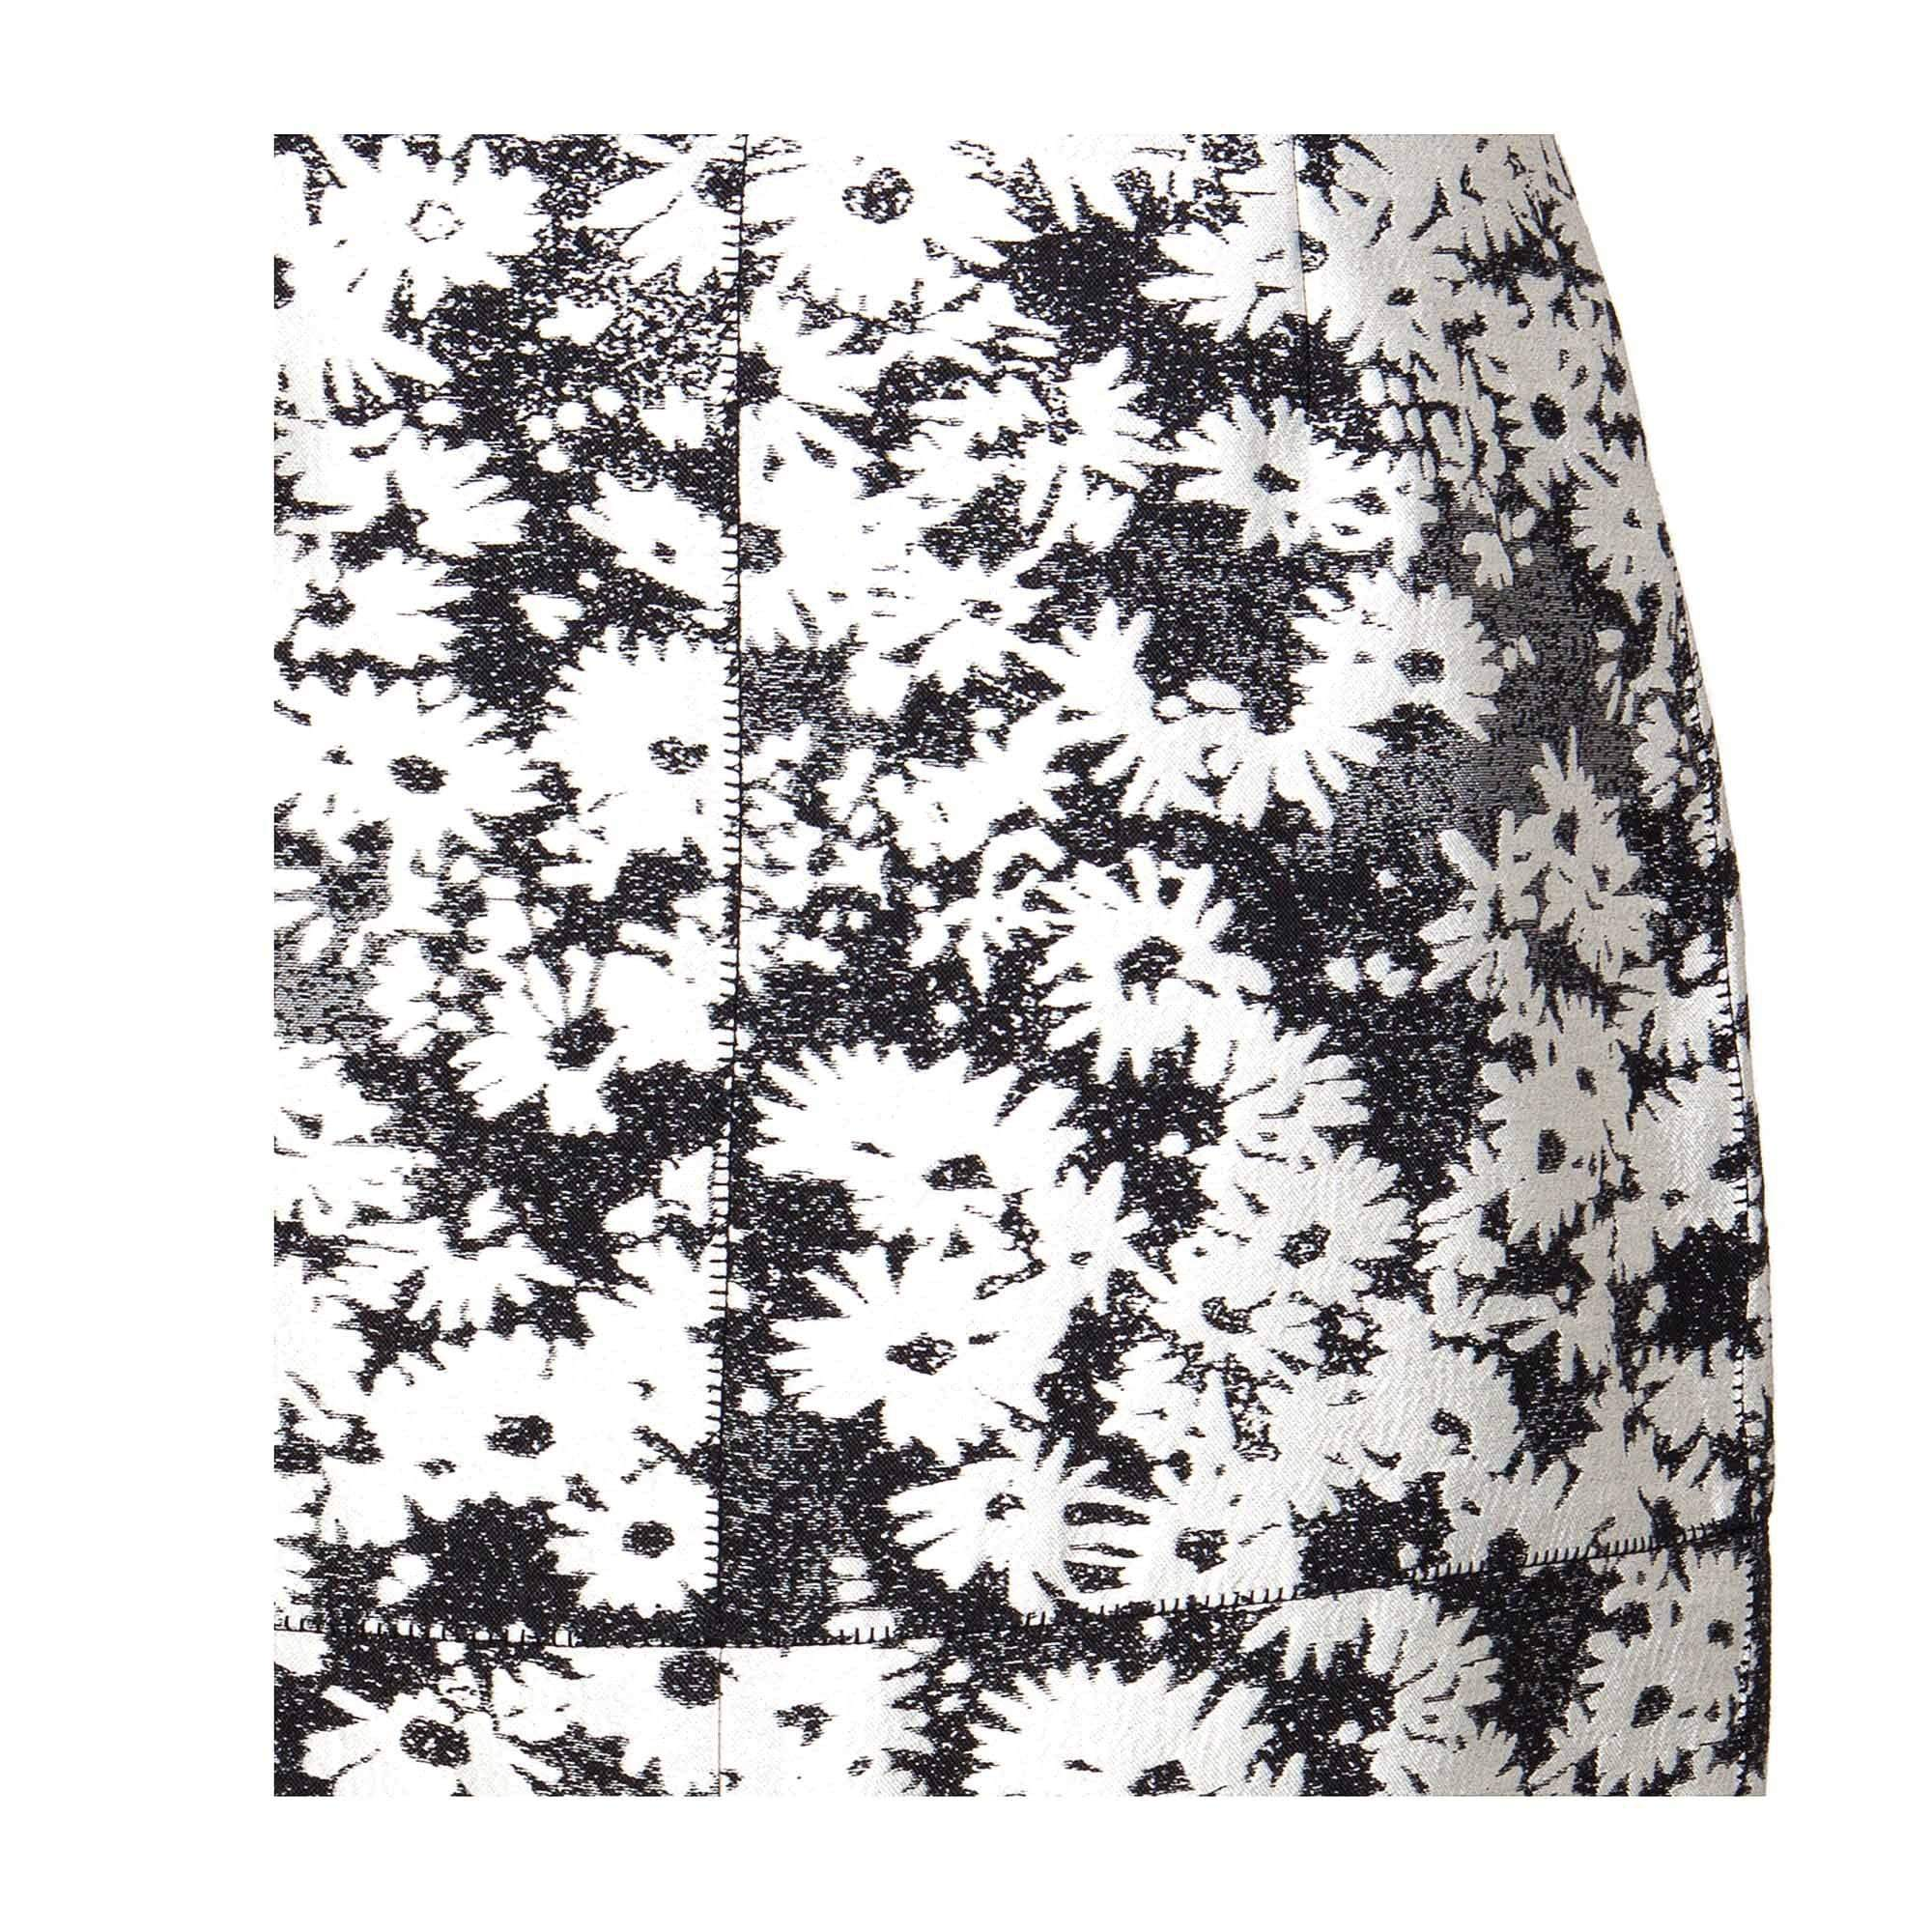 Stella McCartney Print Skirt